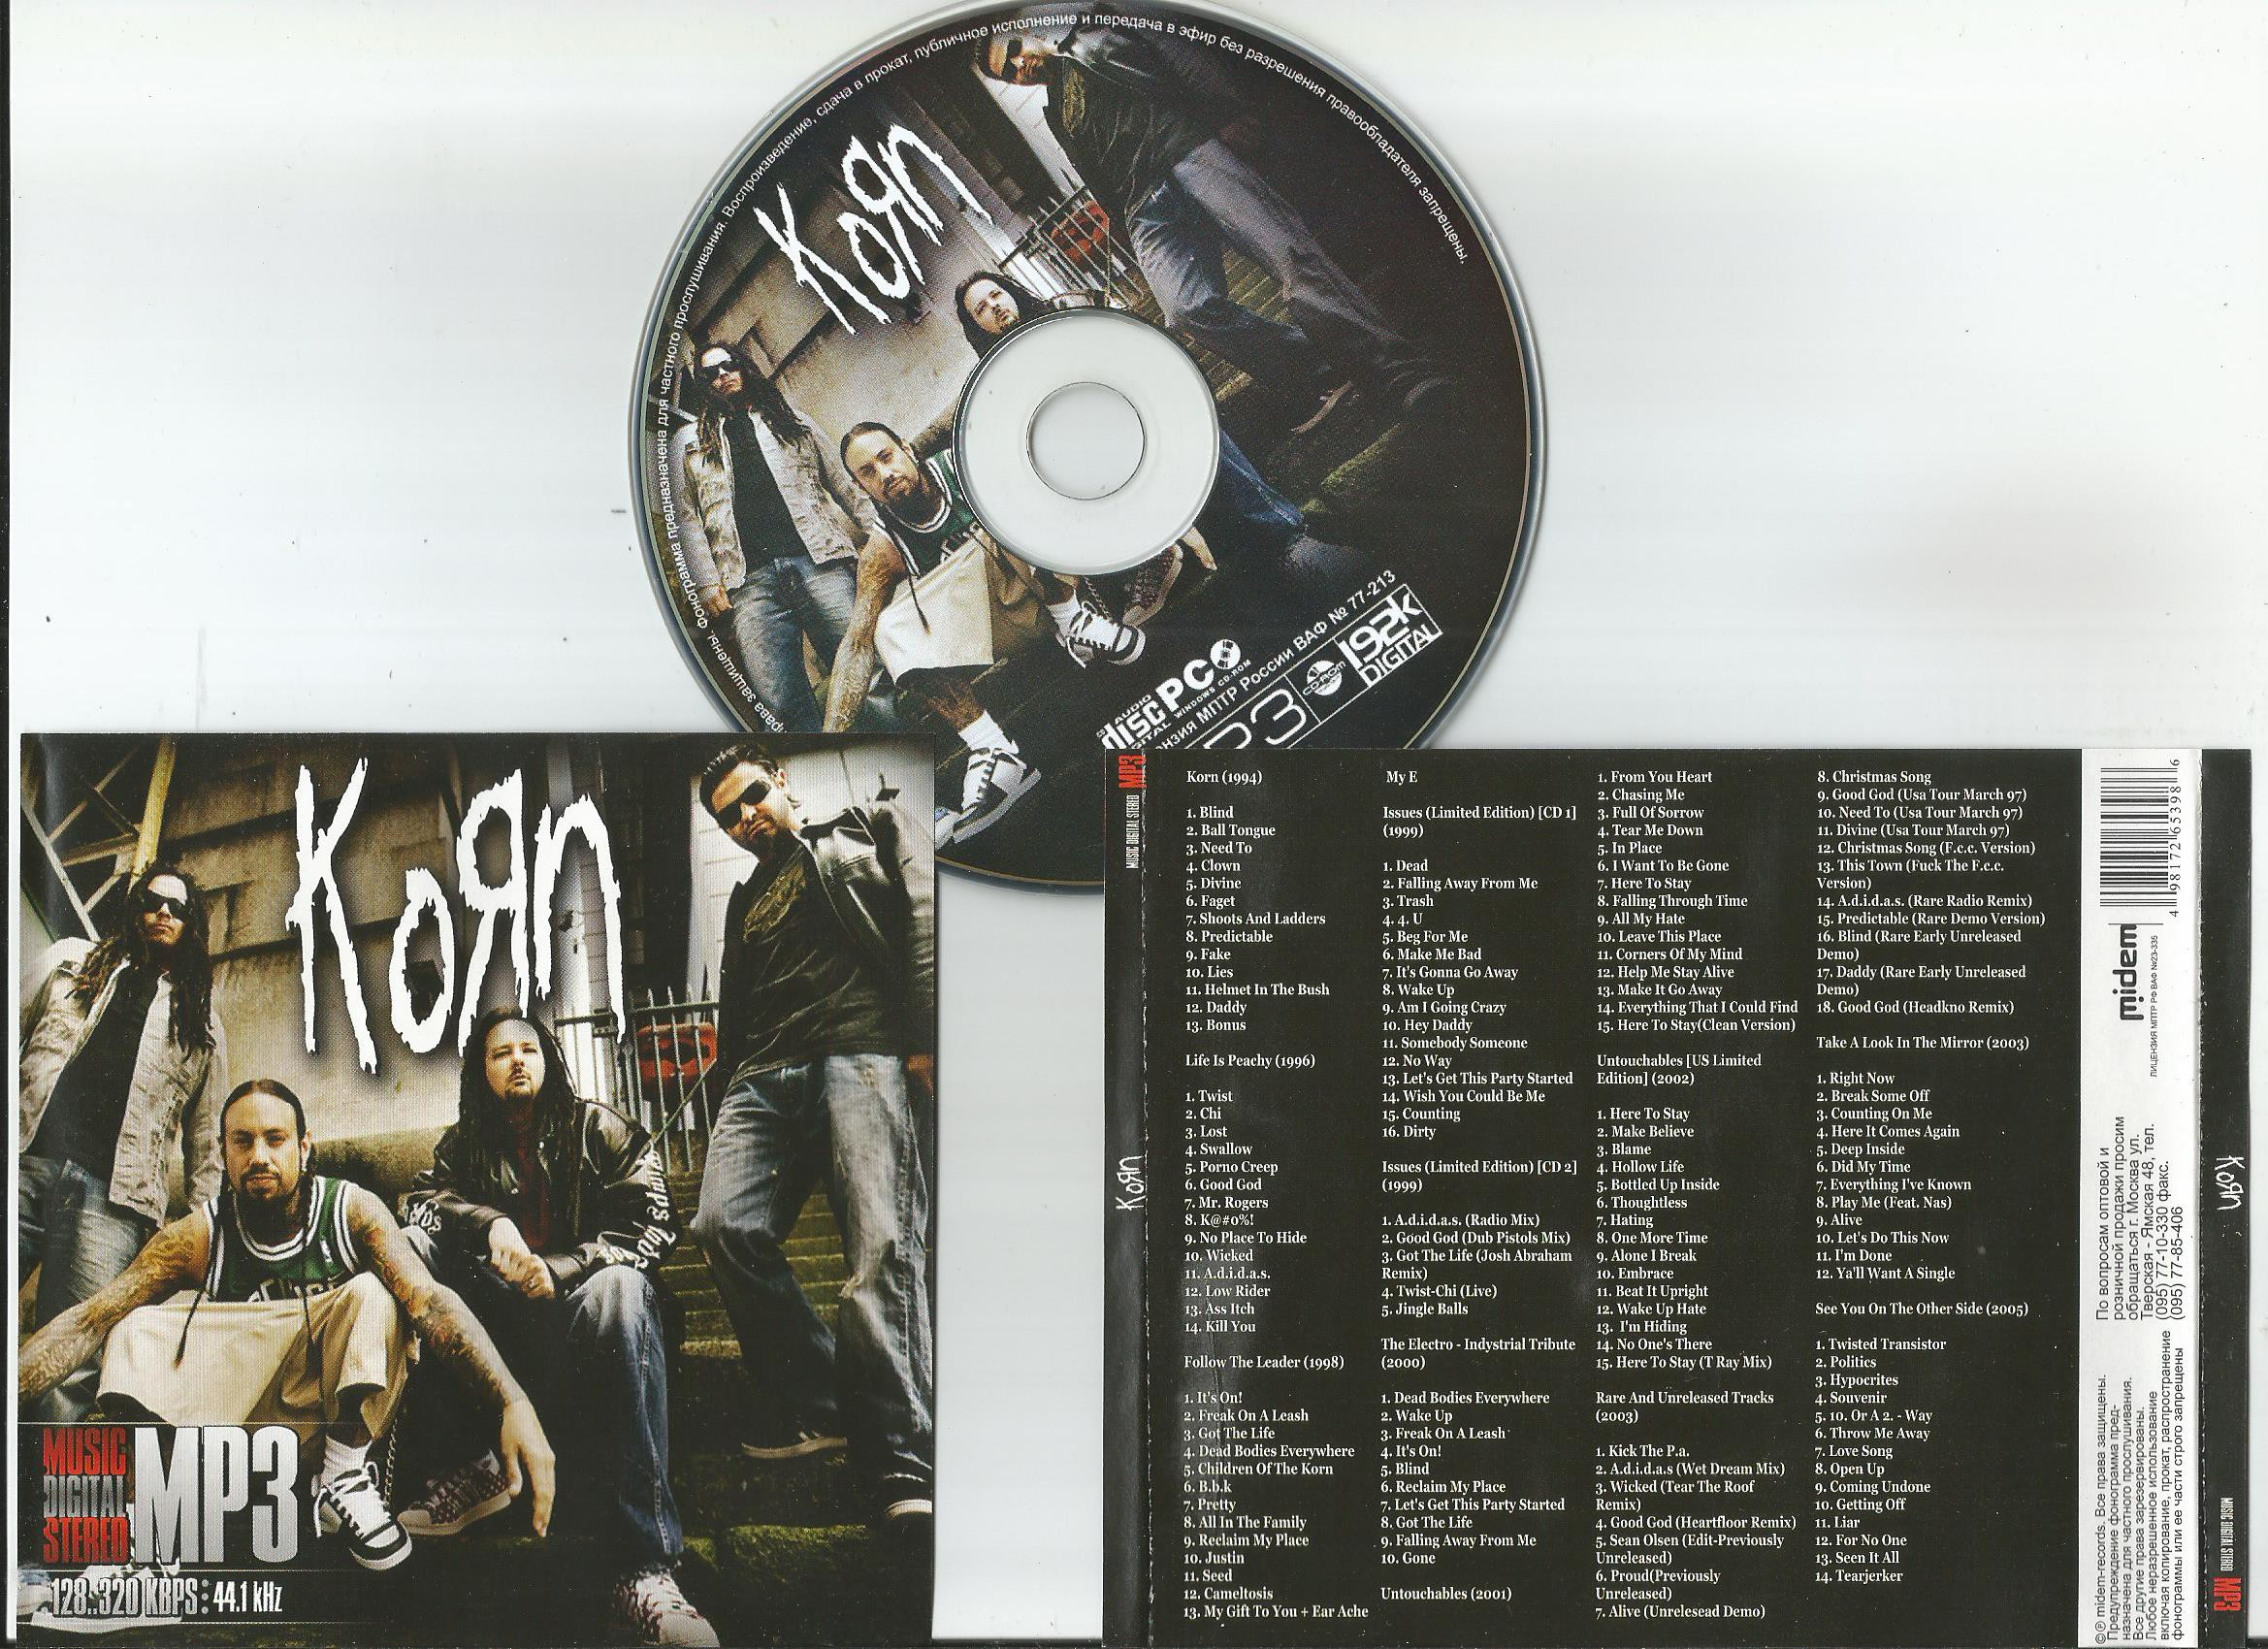 Collection including following full albums korn, life is peachy, follow the  leader, issues (limited by Korn, CD with apexmusic